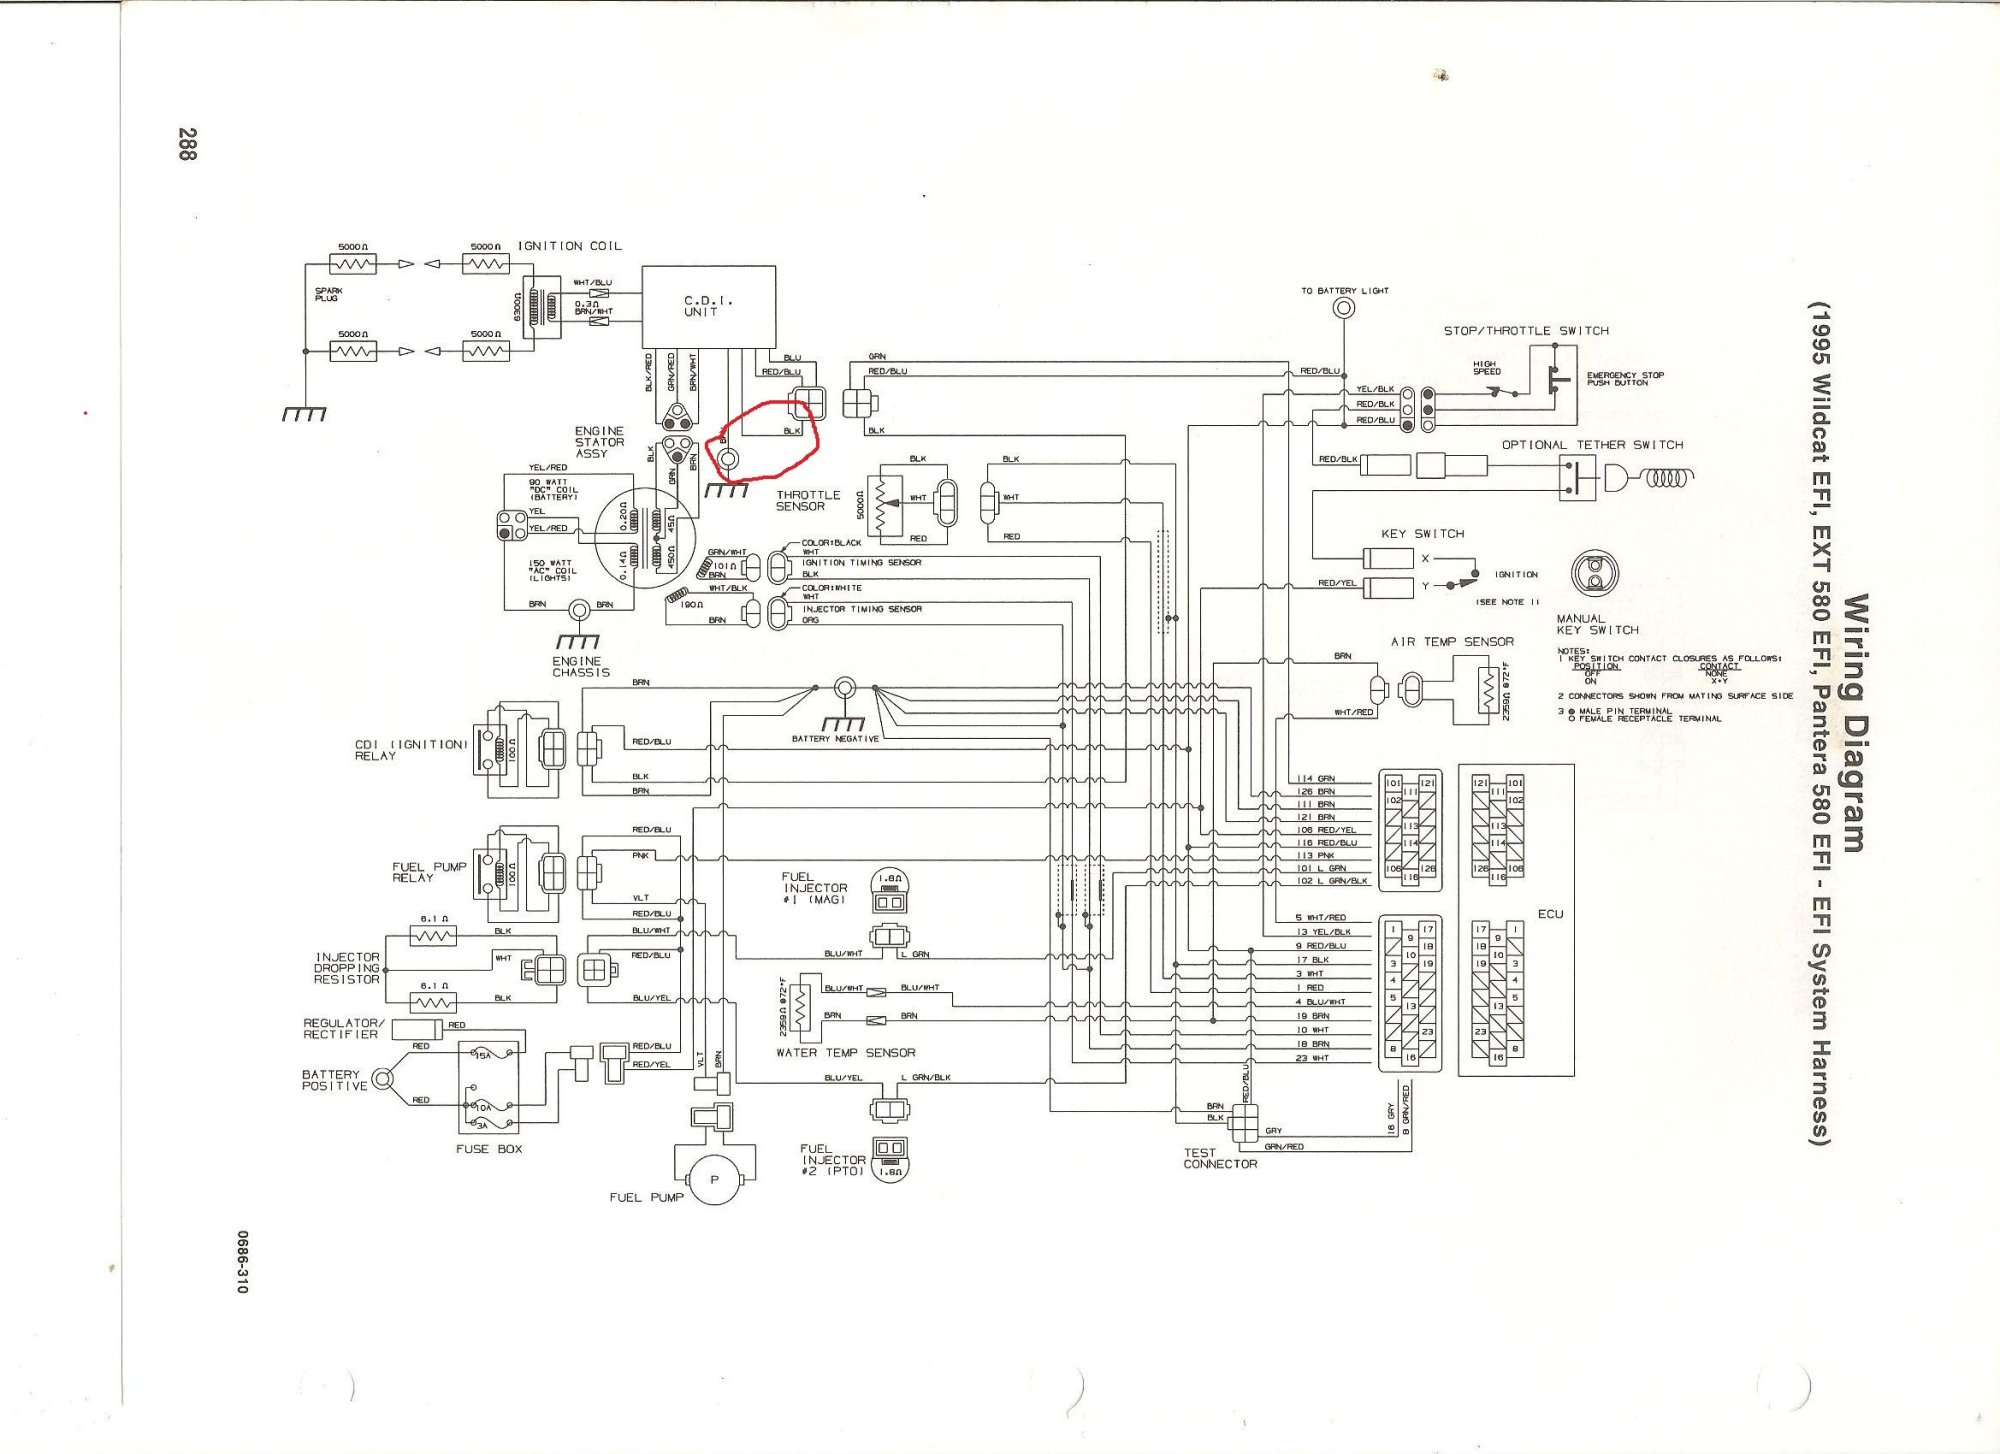 hight resolution of arctic cat 1000 gt wiring diagram wiring diagramarctic cat 1000 gt wiring diagram wiring diagramwiring schematic